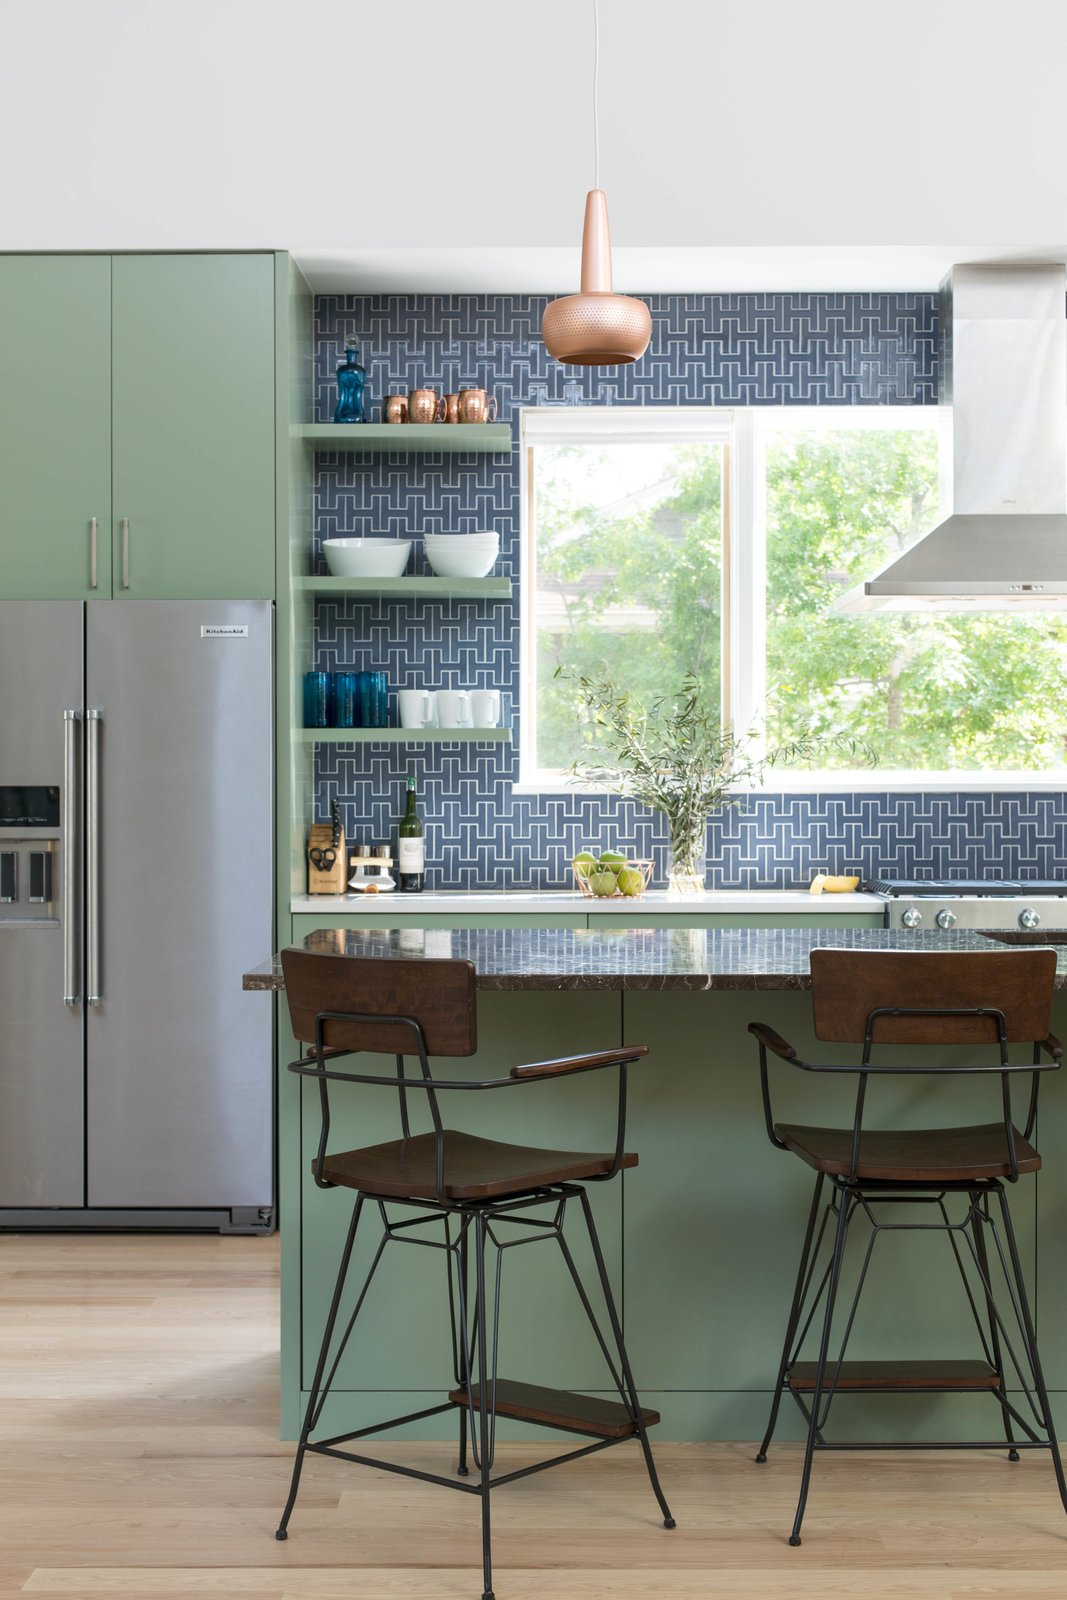 The Architect selected a recycled Fireclay Tile in Slate Blue and paired that with High Park paint from Benjamin Moore. Copper pendants from VITA accent the space. The vent hood is mounted in front of a large window, bringing in natural light and allowing for a view of the herb garden.